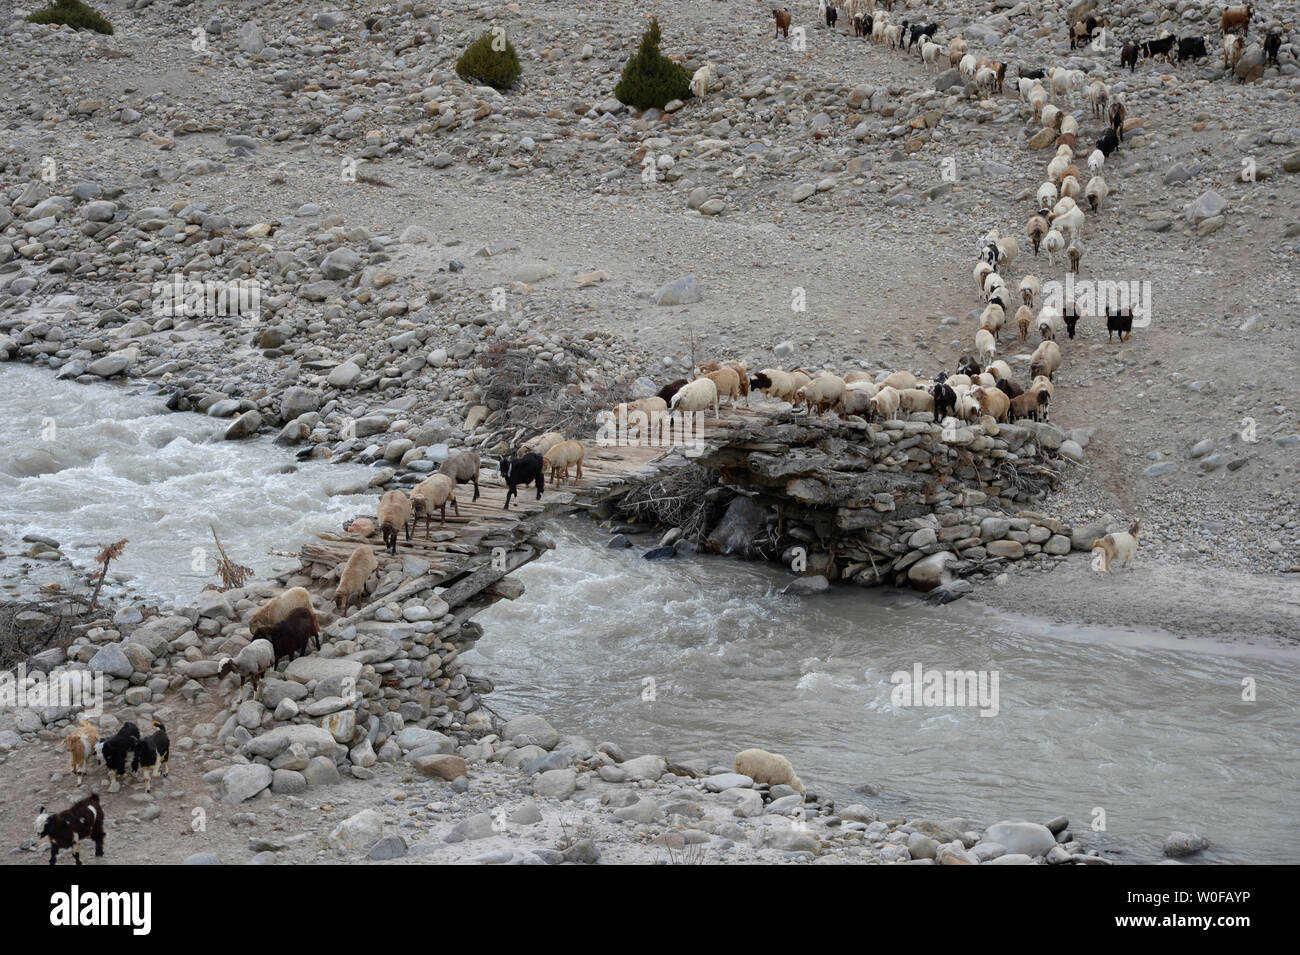 Pakistan, Gilgit Baltistan area, asheep herd is crossing the Shaigiri river at 3500m high - Stock Image